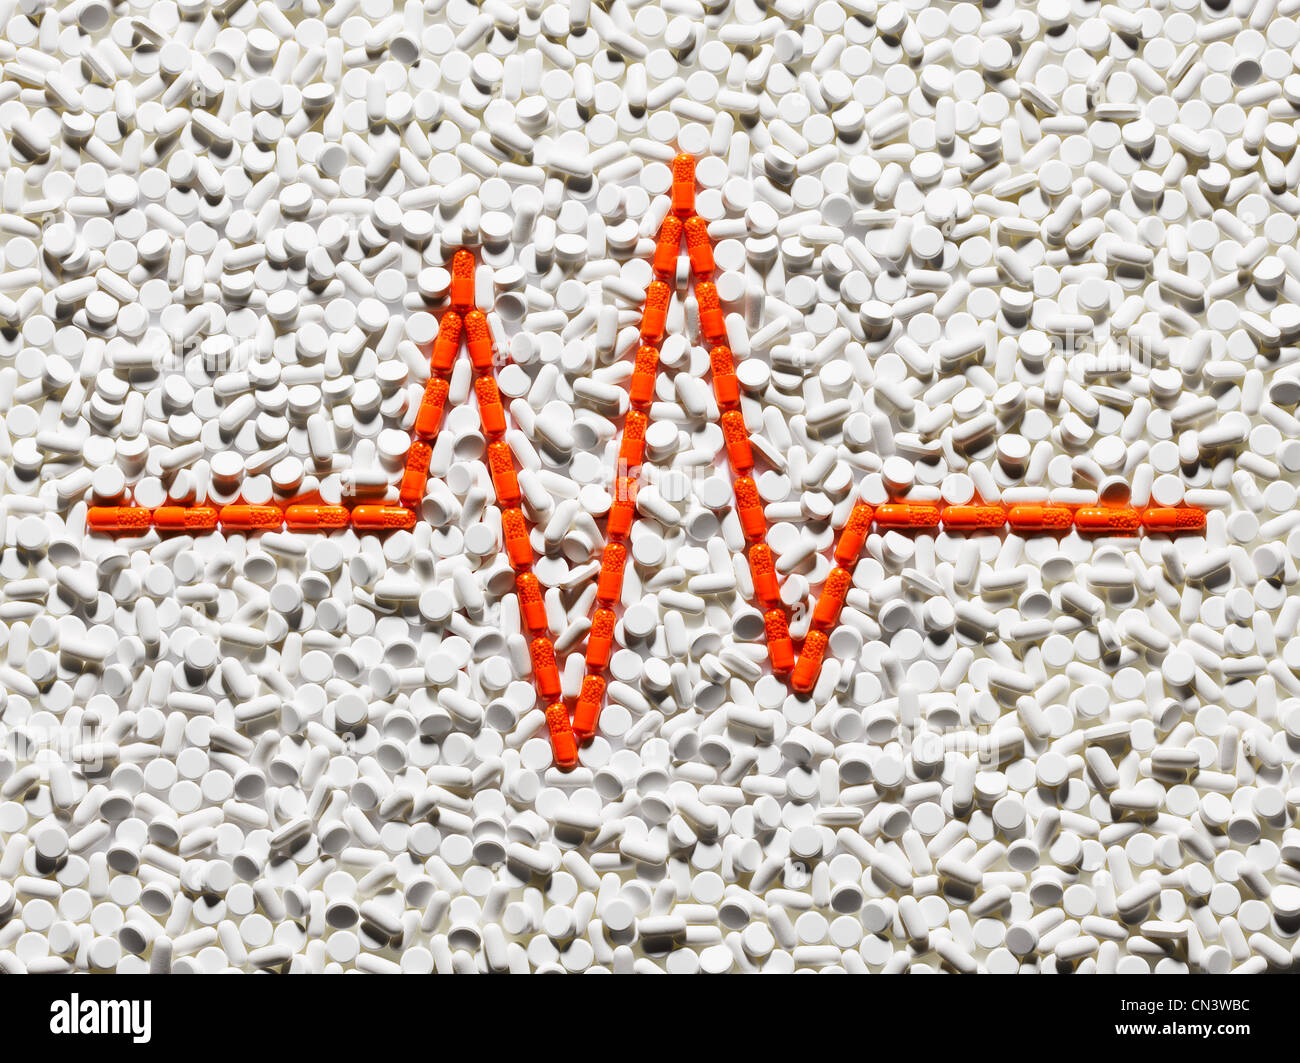 Pulse trace made up of orange pills - Stock Image